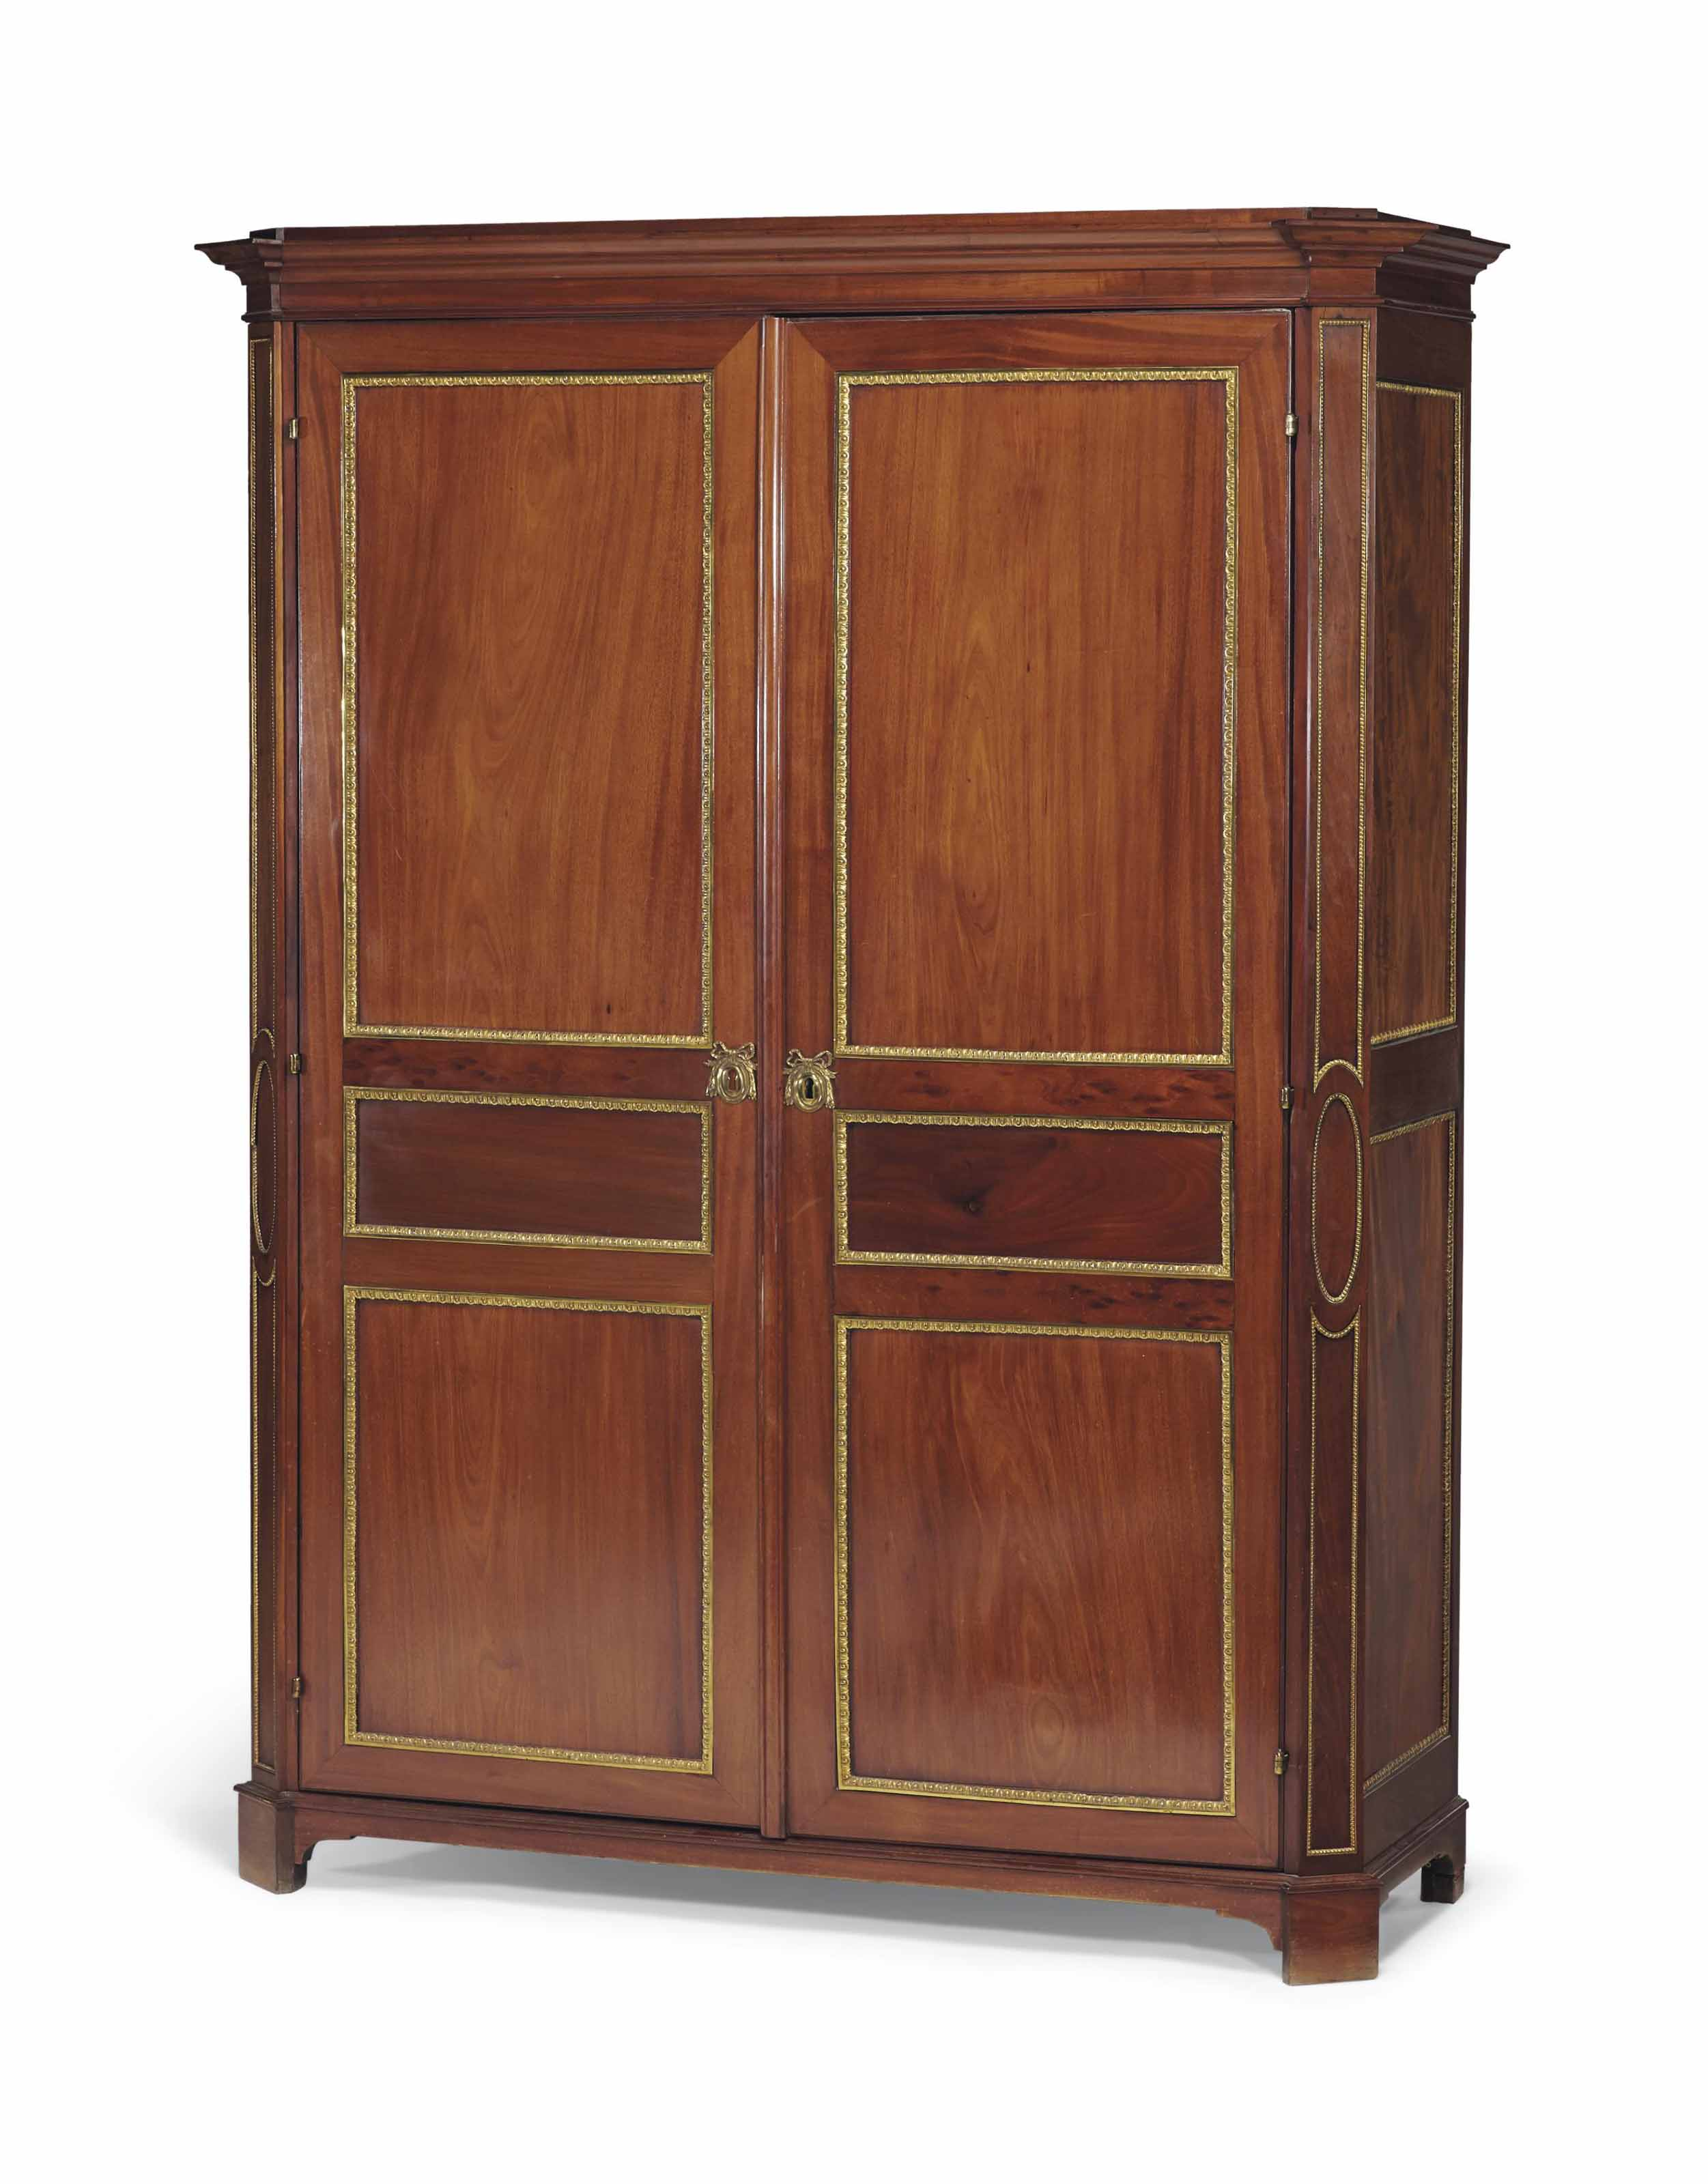 armoire de style louis xvi seconde moitie du xixeme siecle christie 39 s. Black Bedroom Furniture Sets. Home Design Ideas